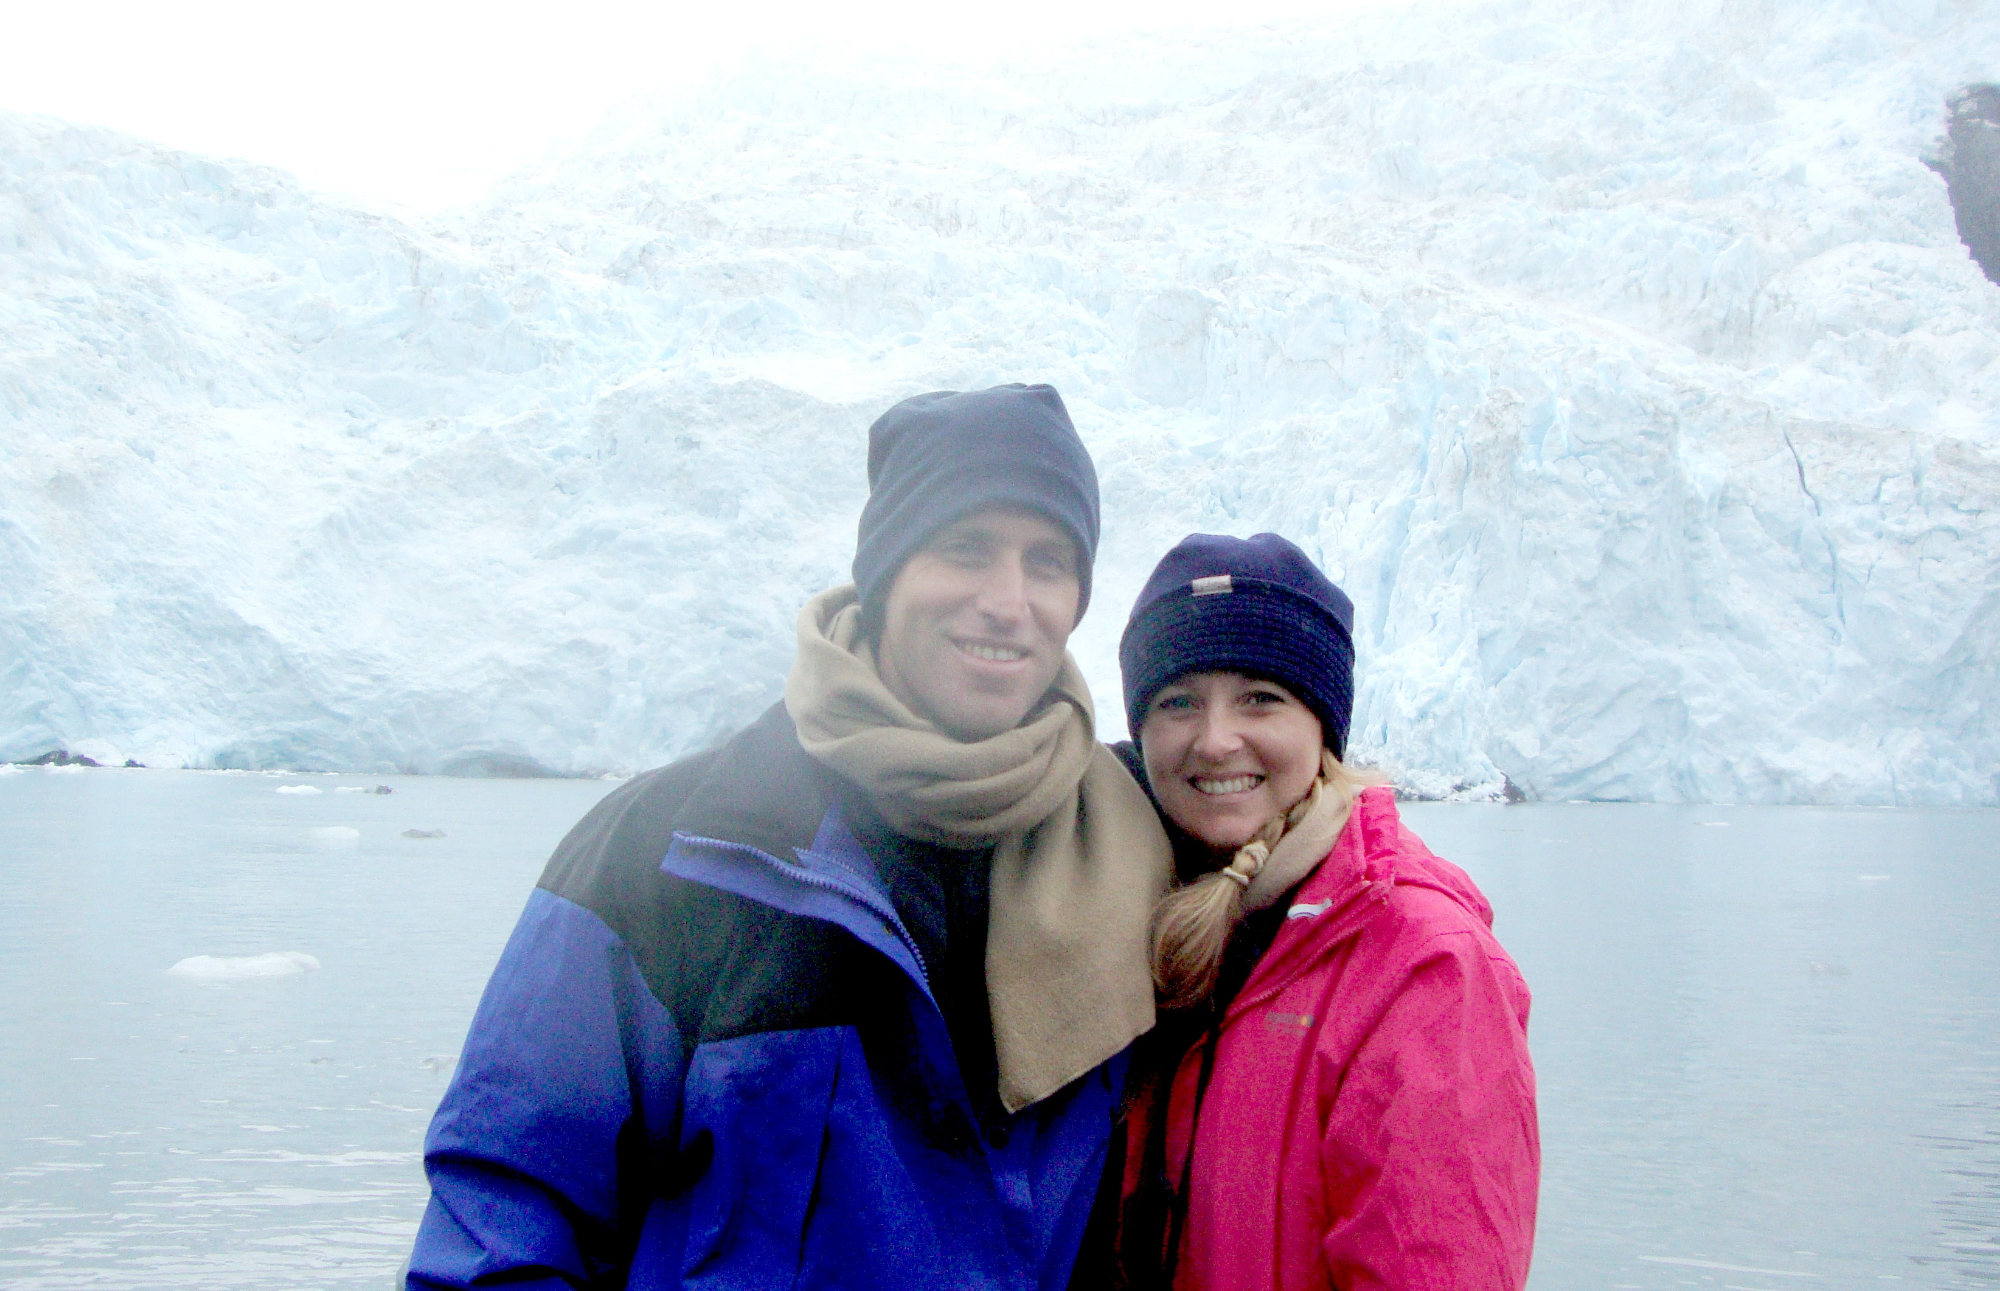 Samantha and her husband in Alaska